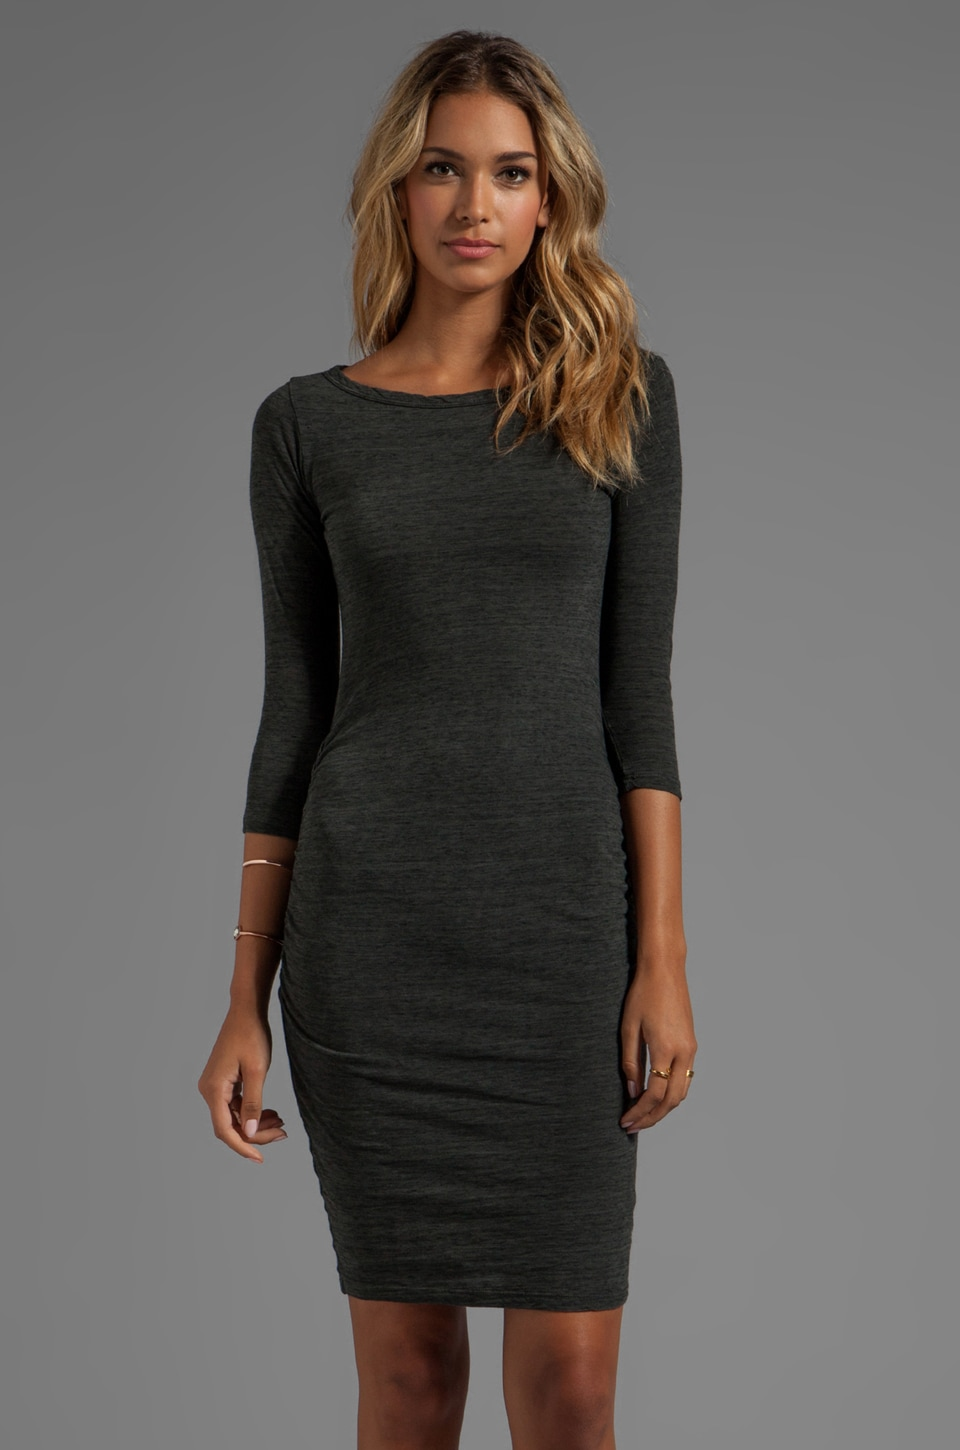 James Perse Jewel Neck Dress in Charcoal